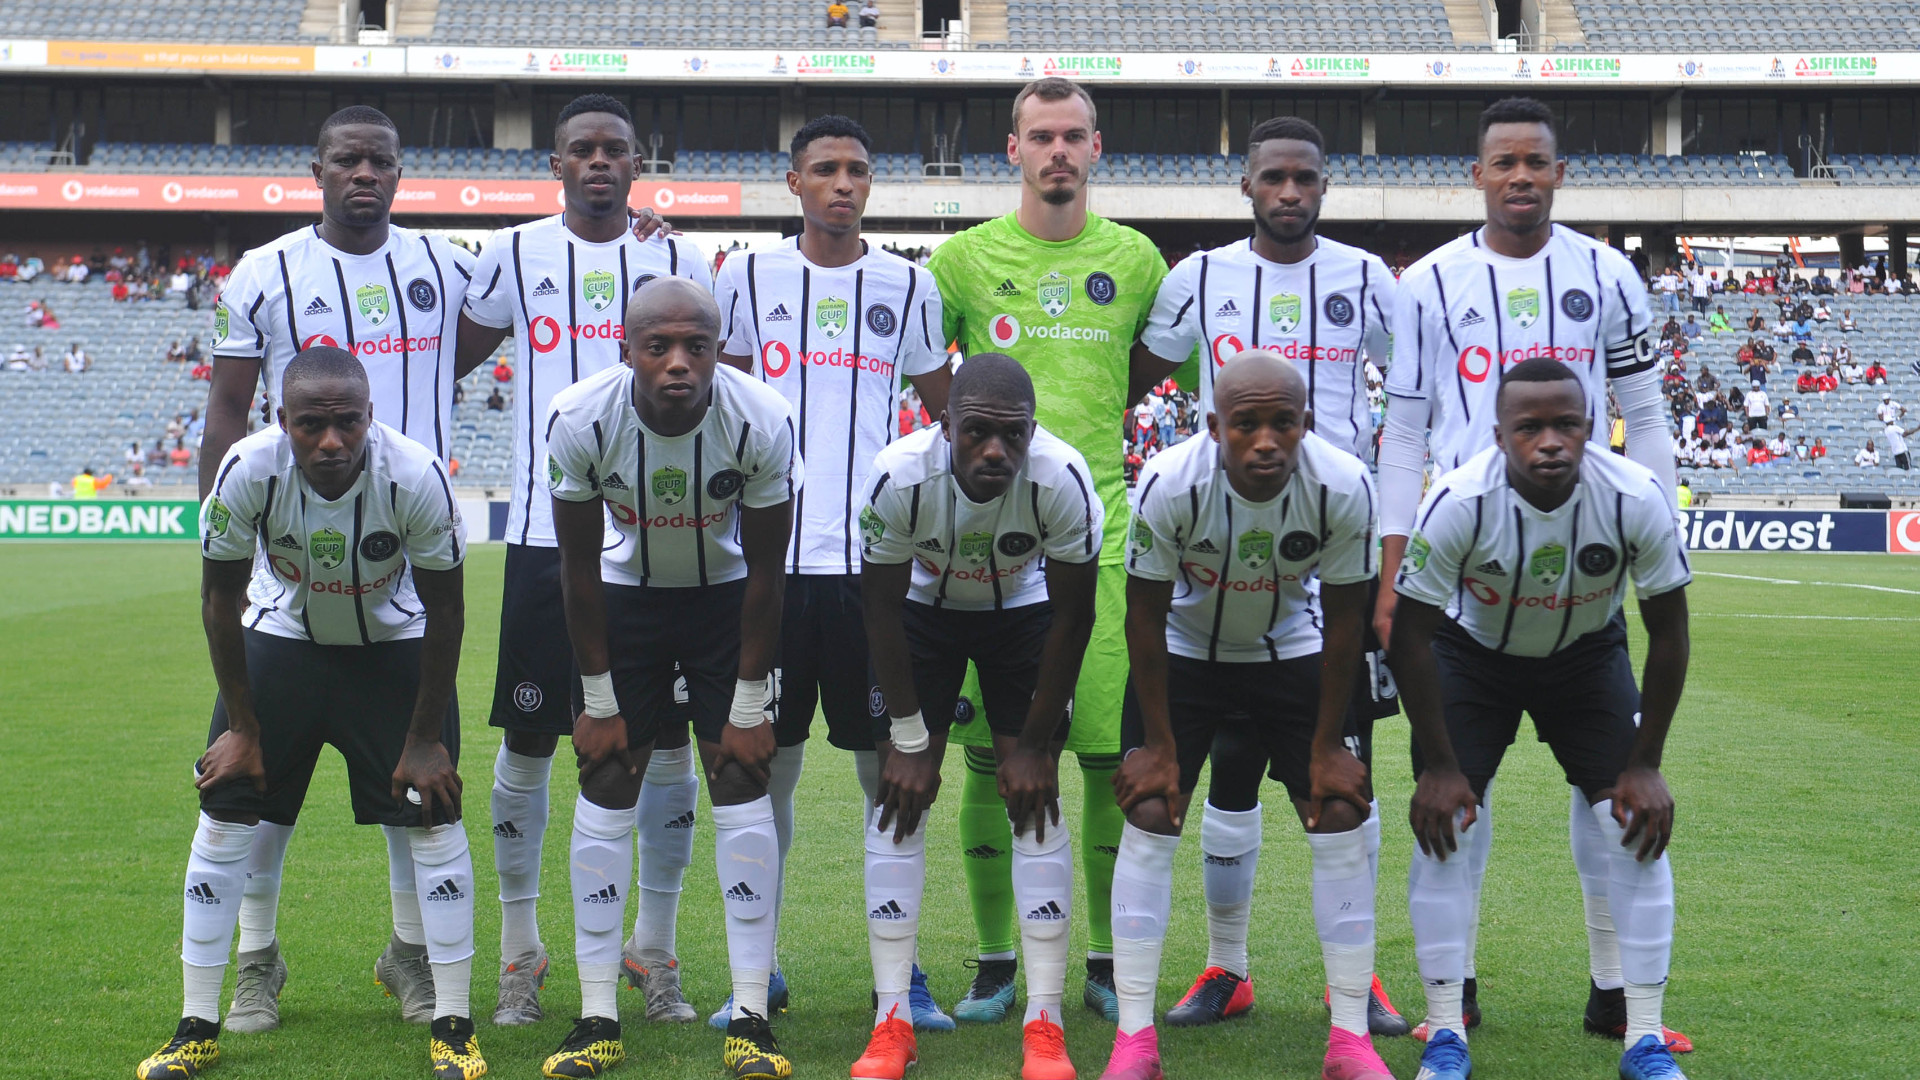 Orlando Pirates Team, February 2020